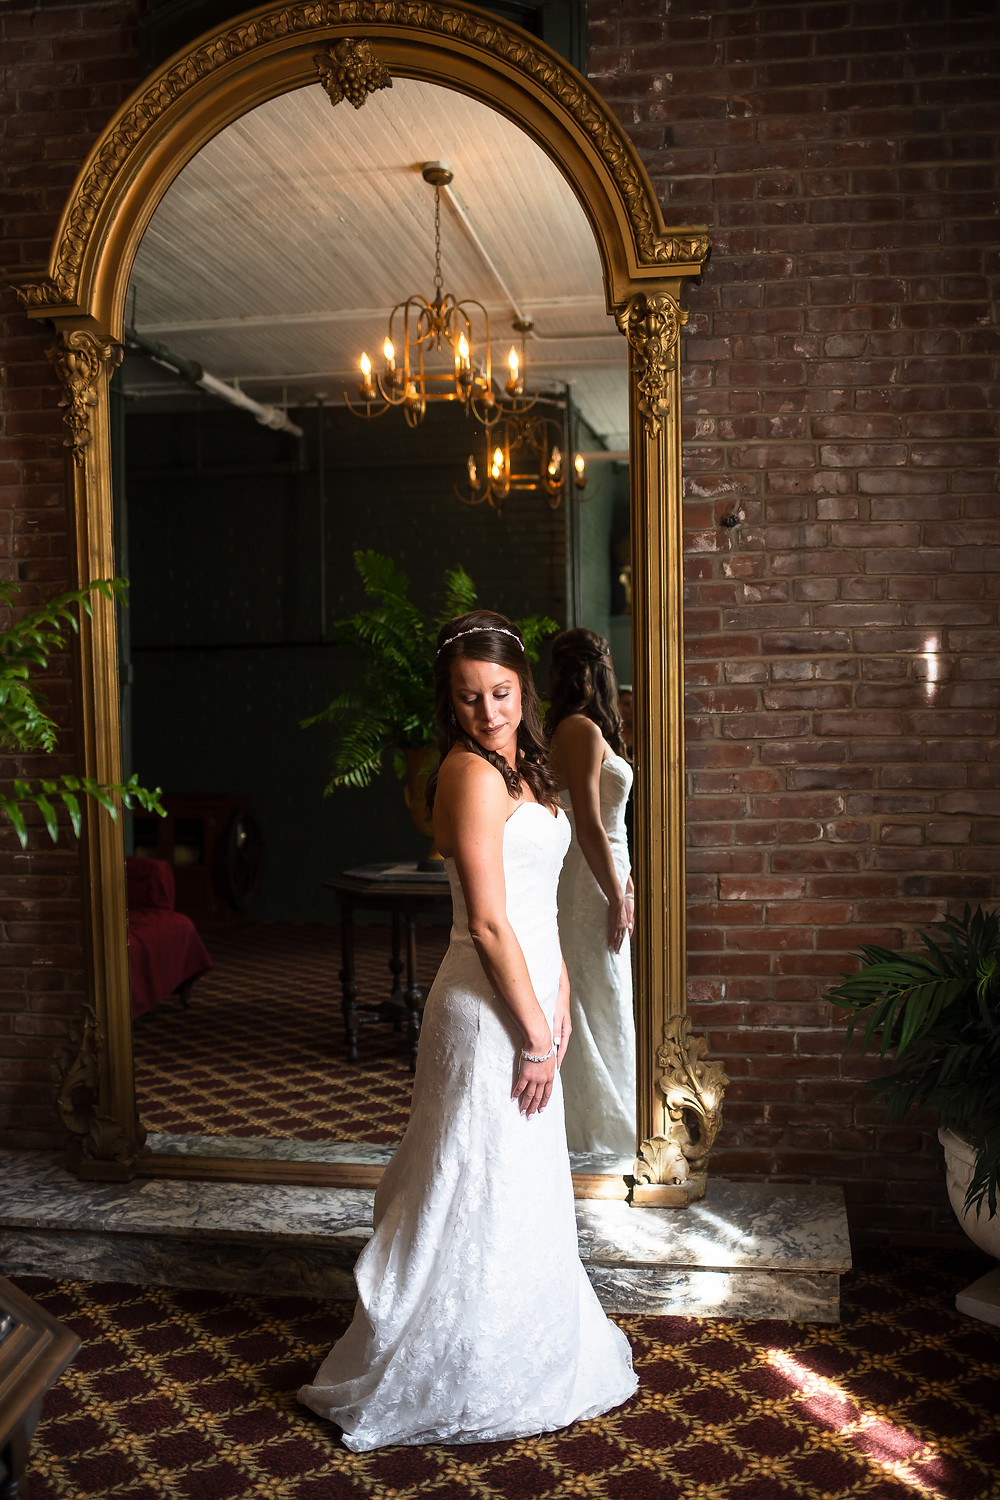 Bridal portrait in front of mirror